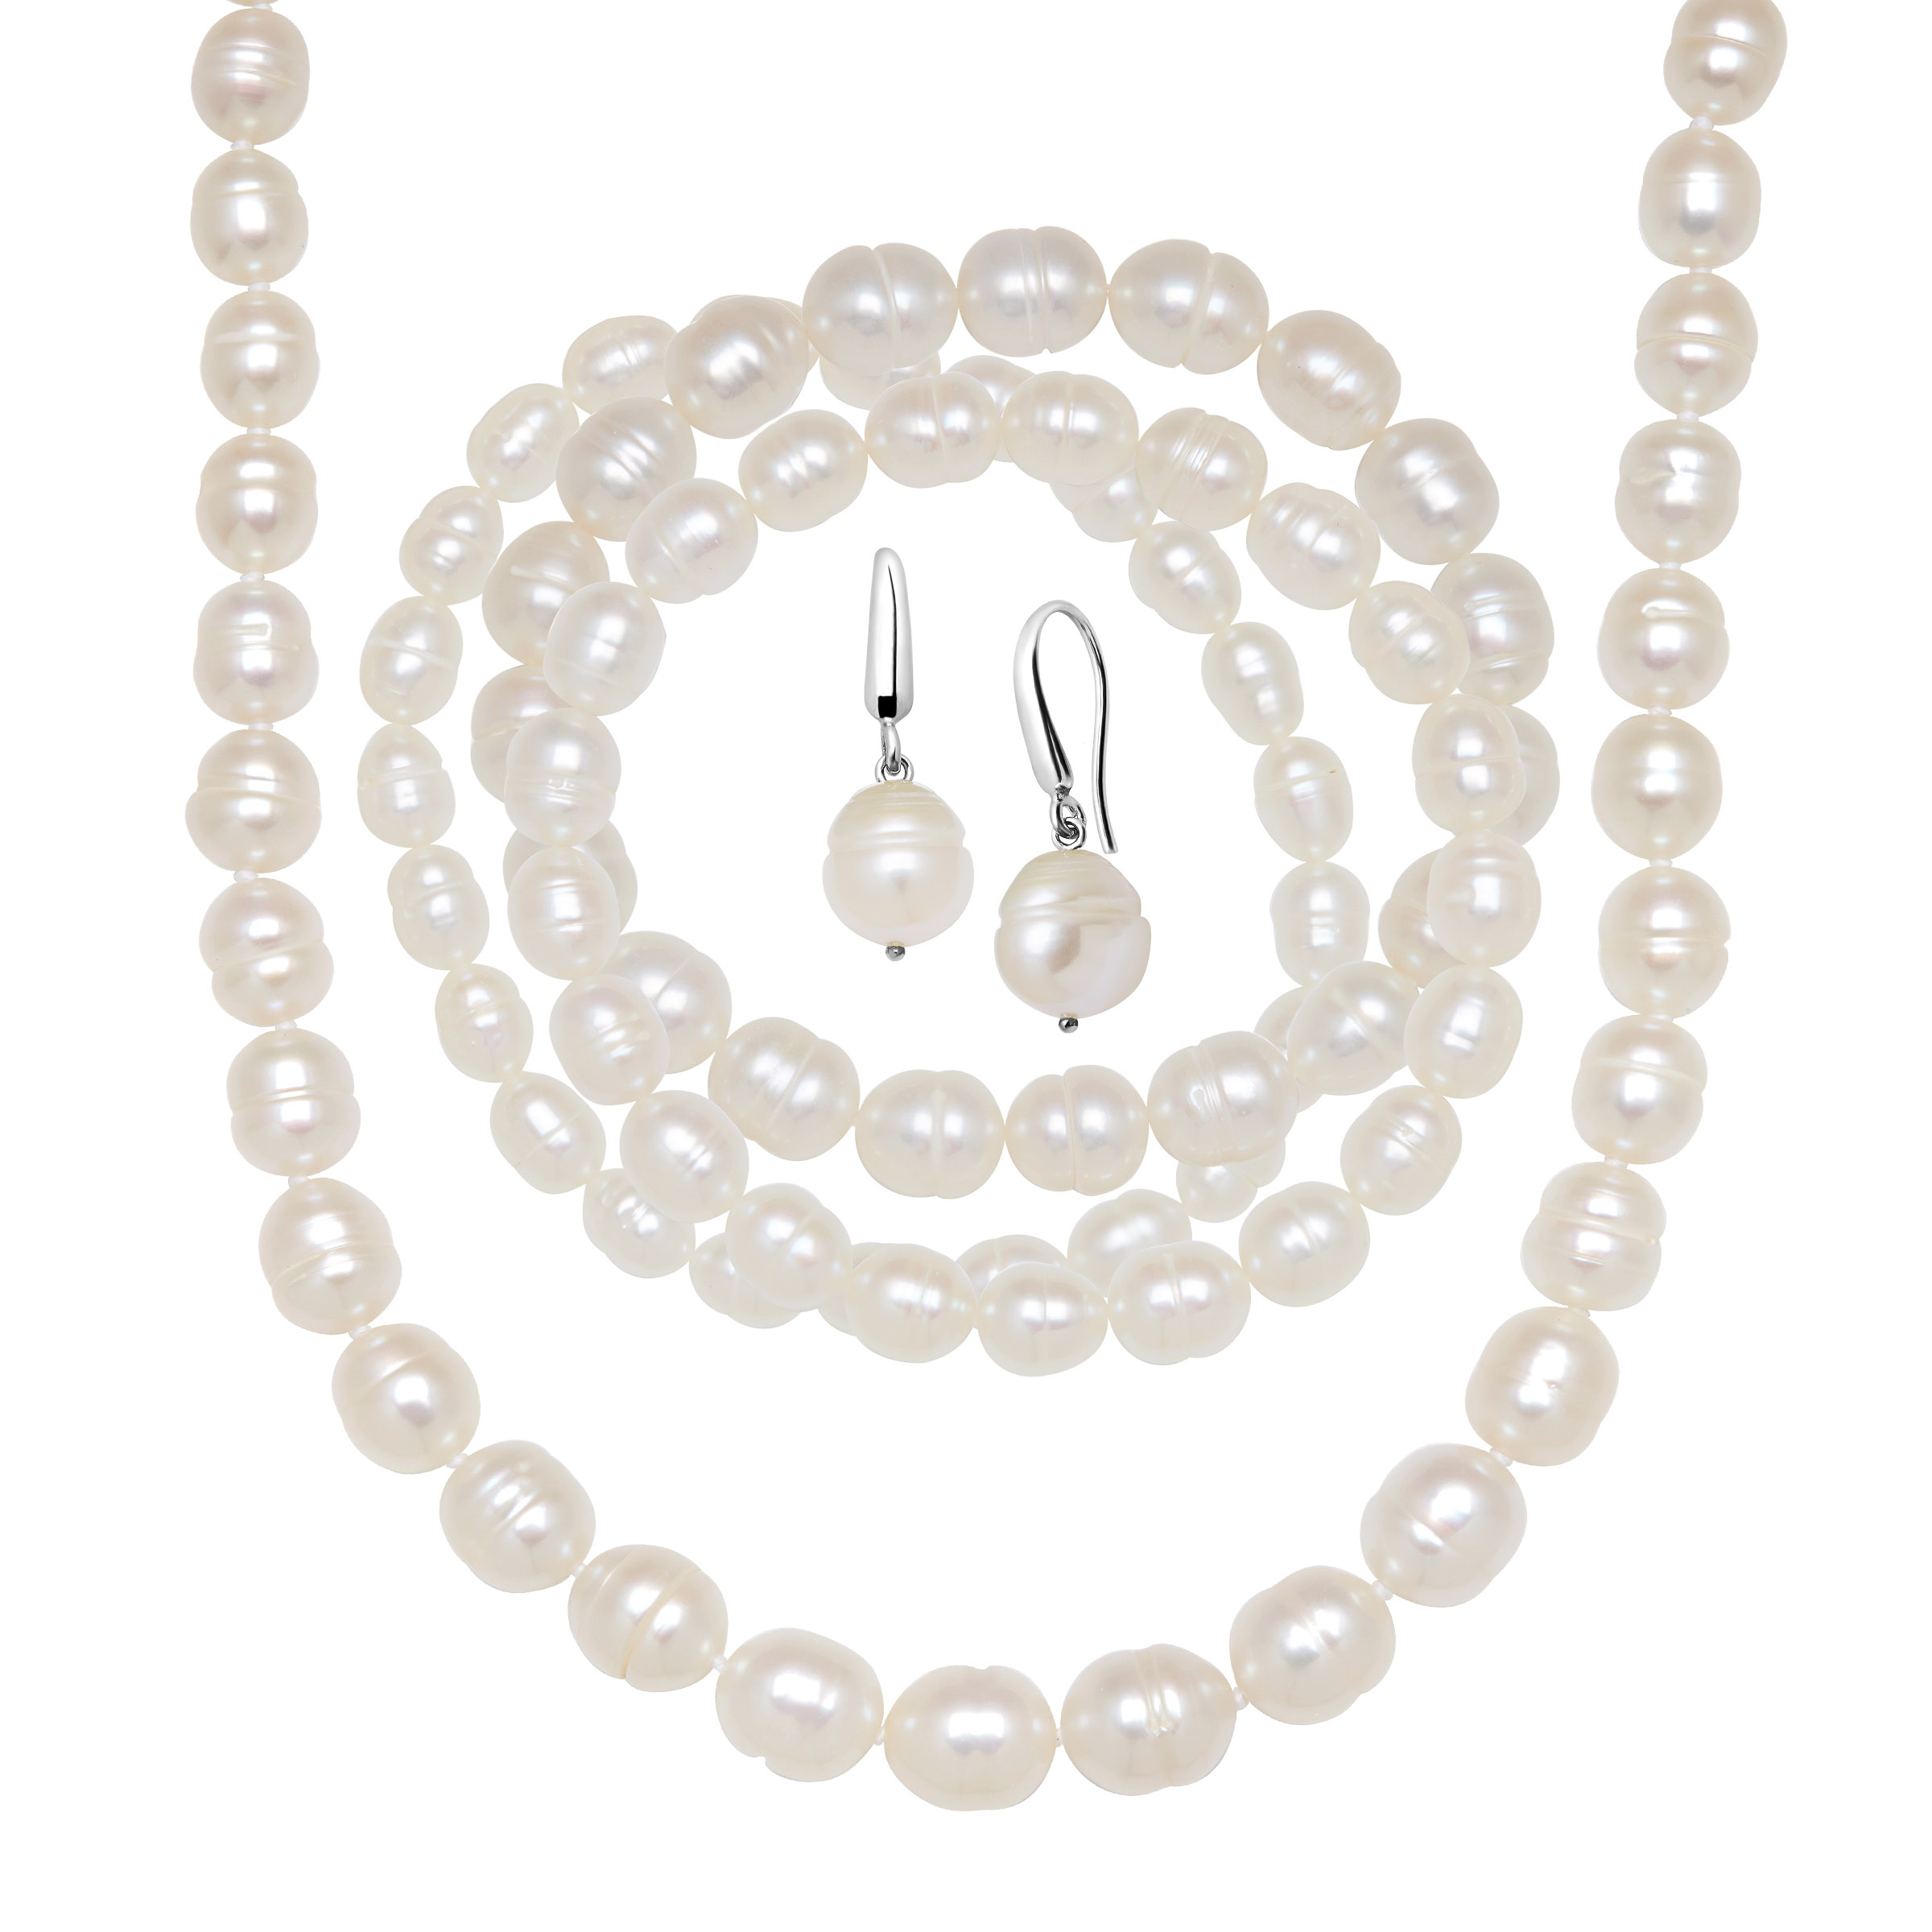 White Ringed Freshwater Pearl Earring, Bracelets & Necklace Set in Sterling Silver by Richline Group